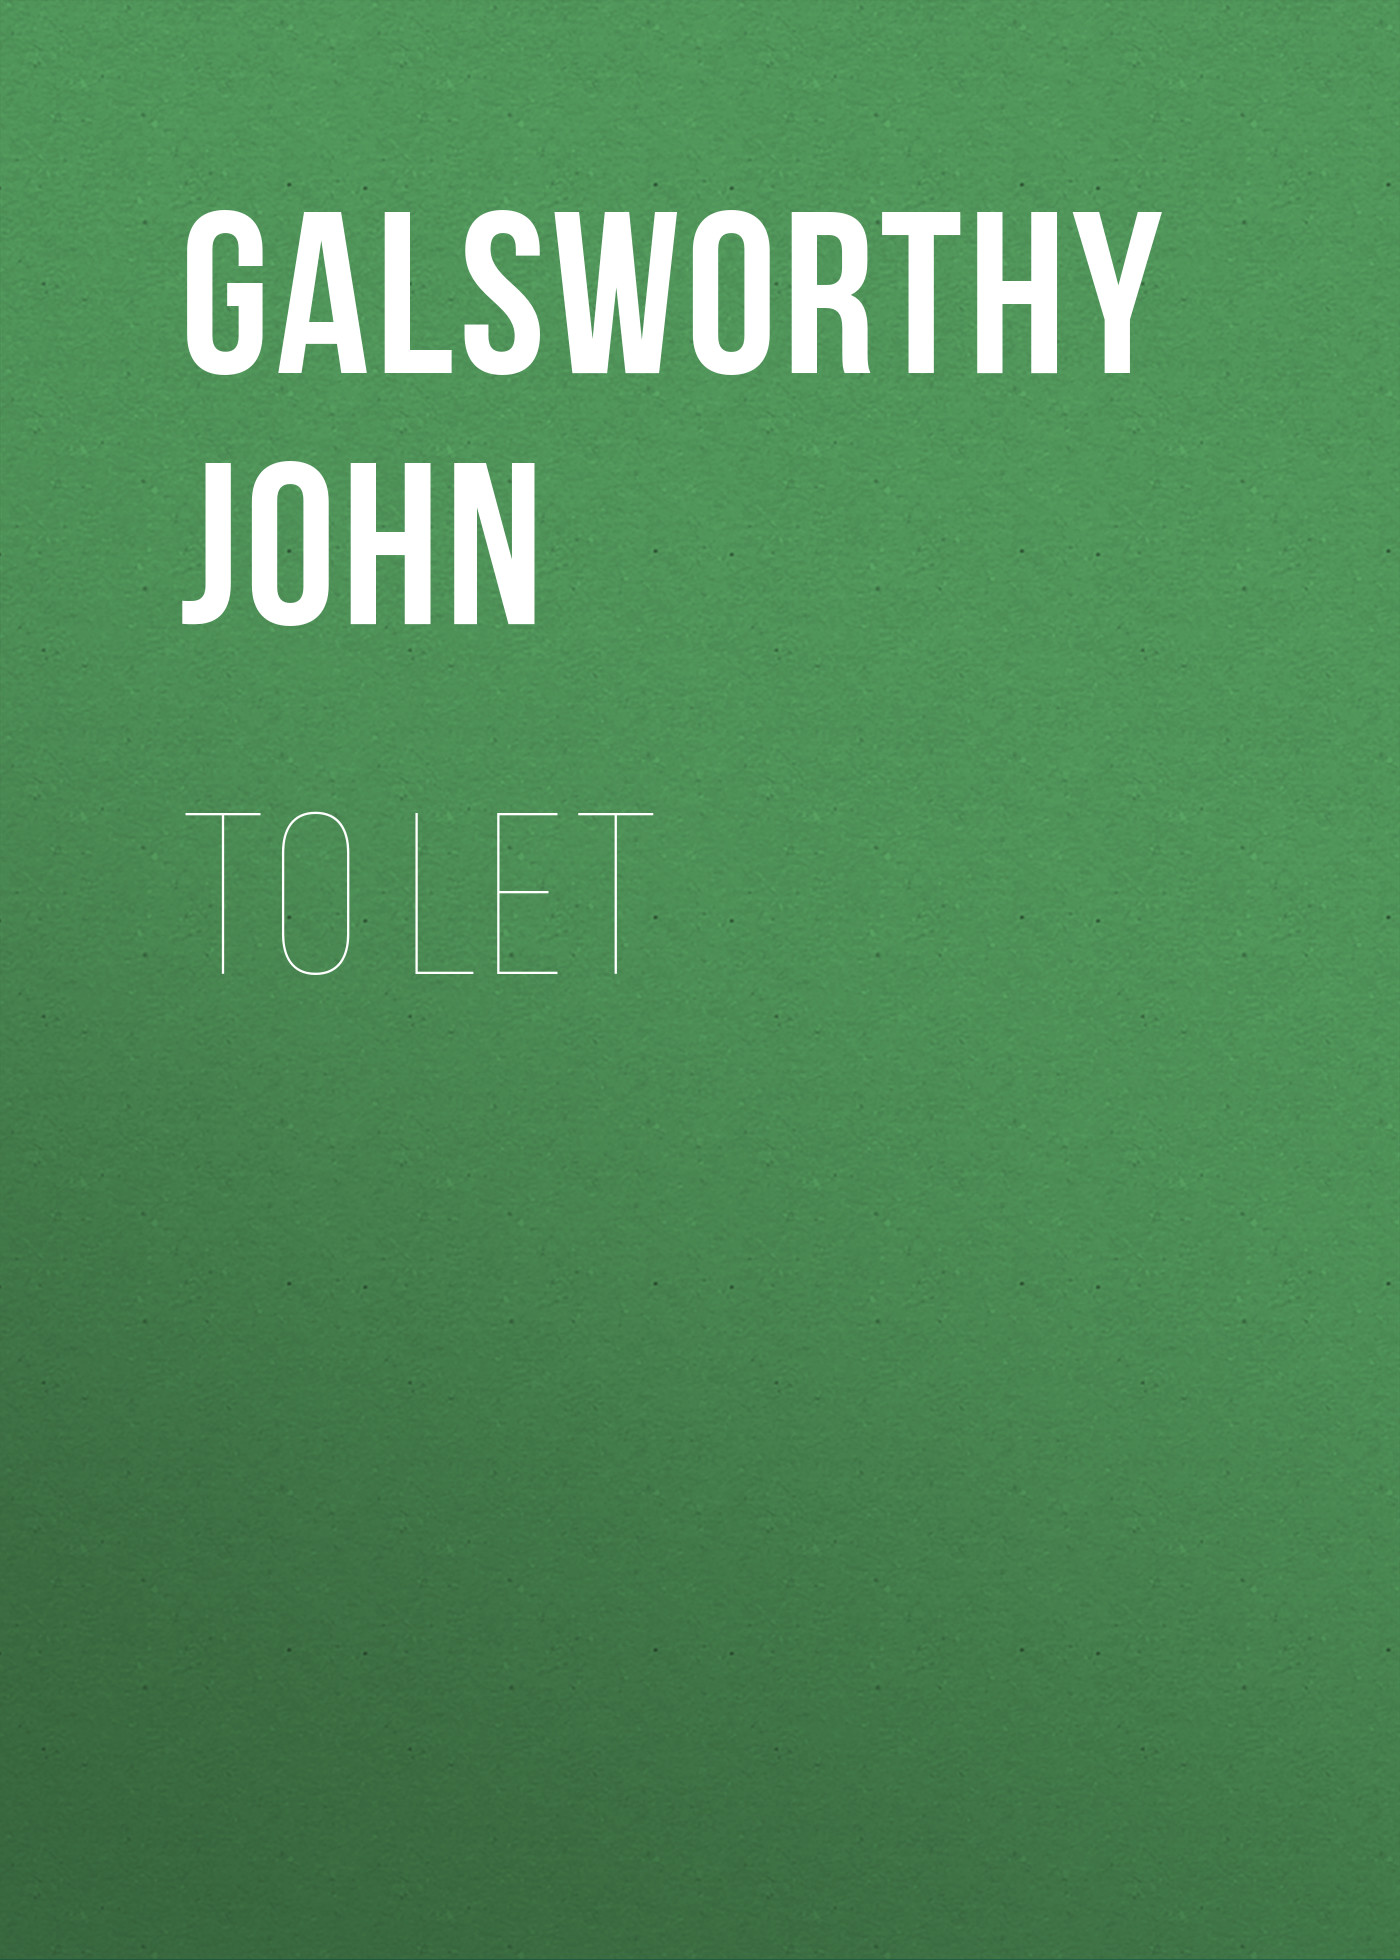 Galsworthy John To Let